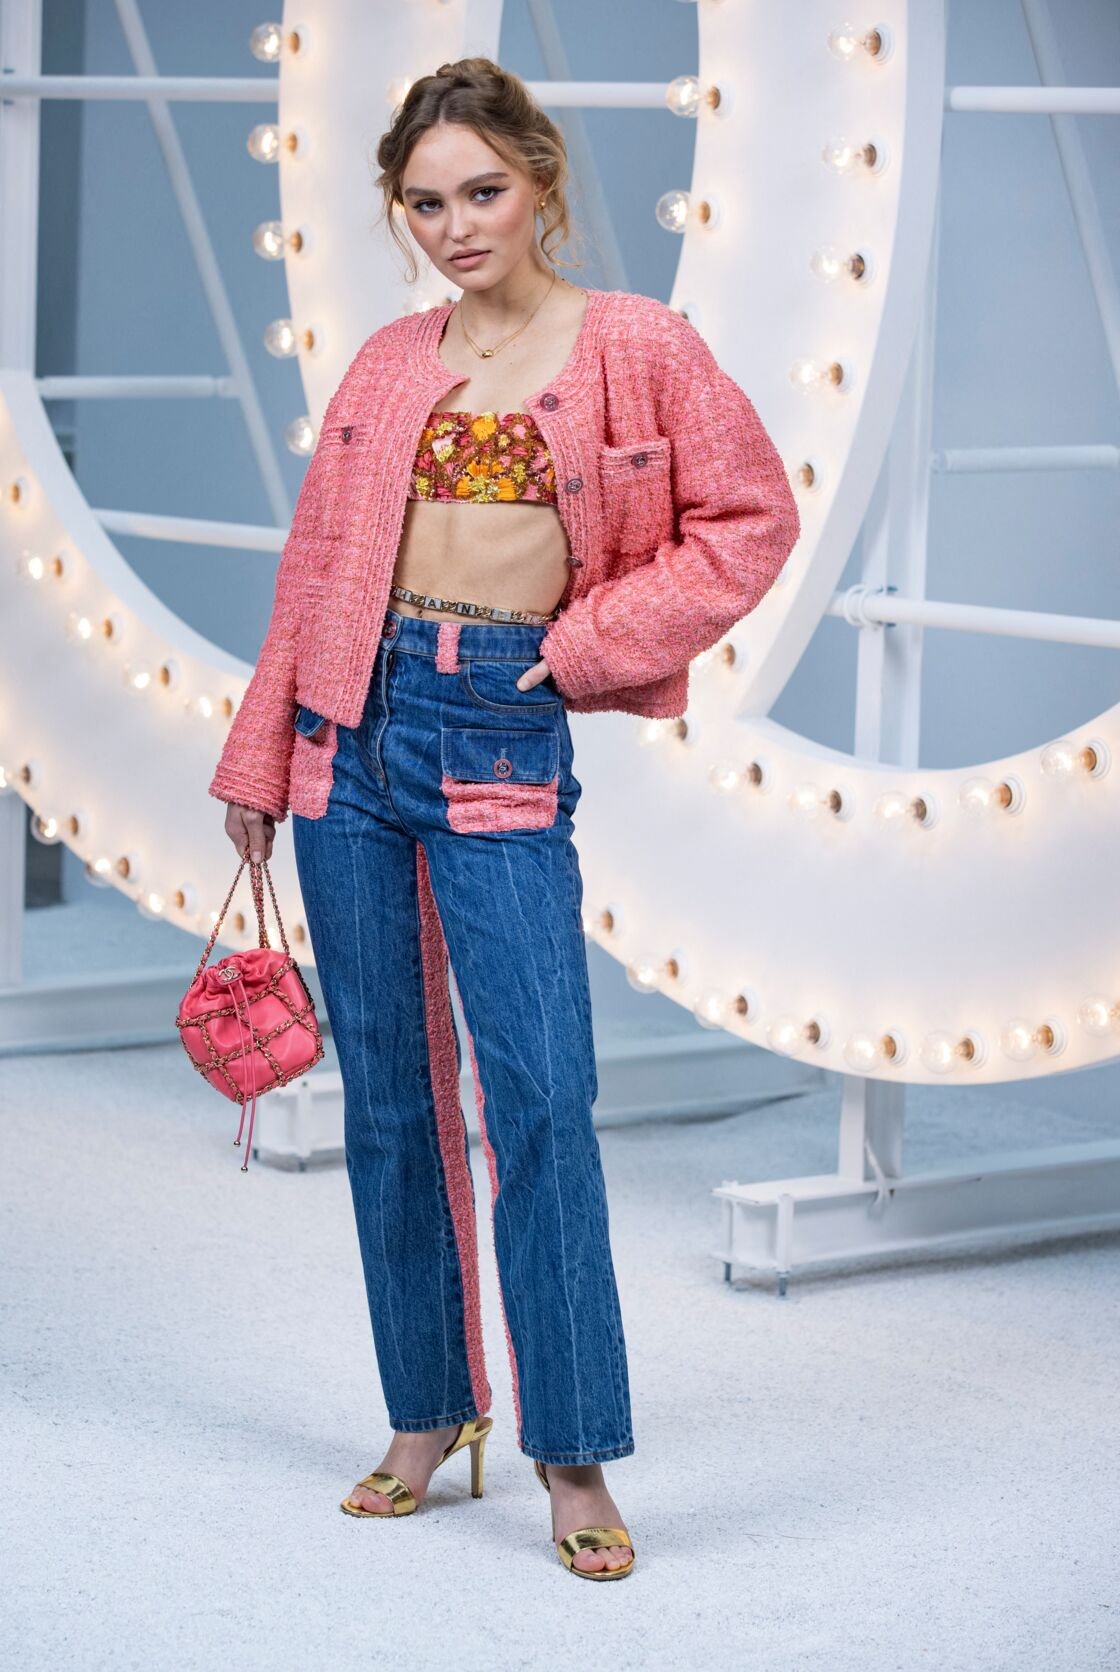 Lily-Rose Depp en jean et tweed de la collection printemps/été 2021 de Chanel